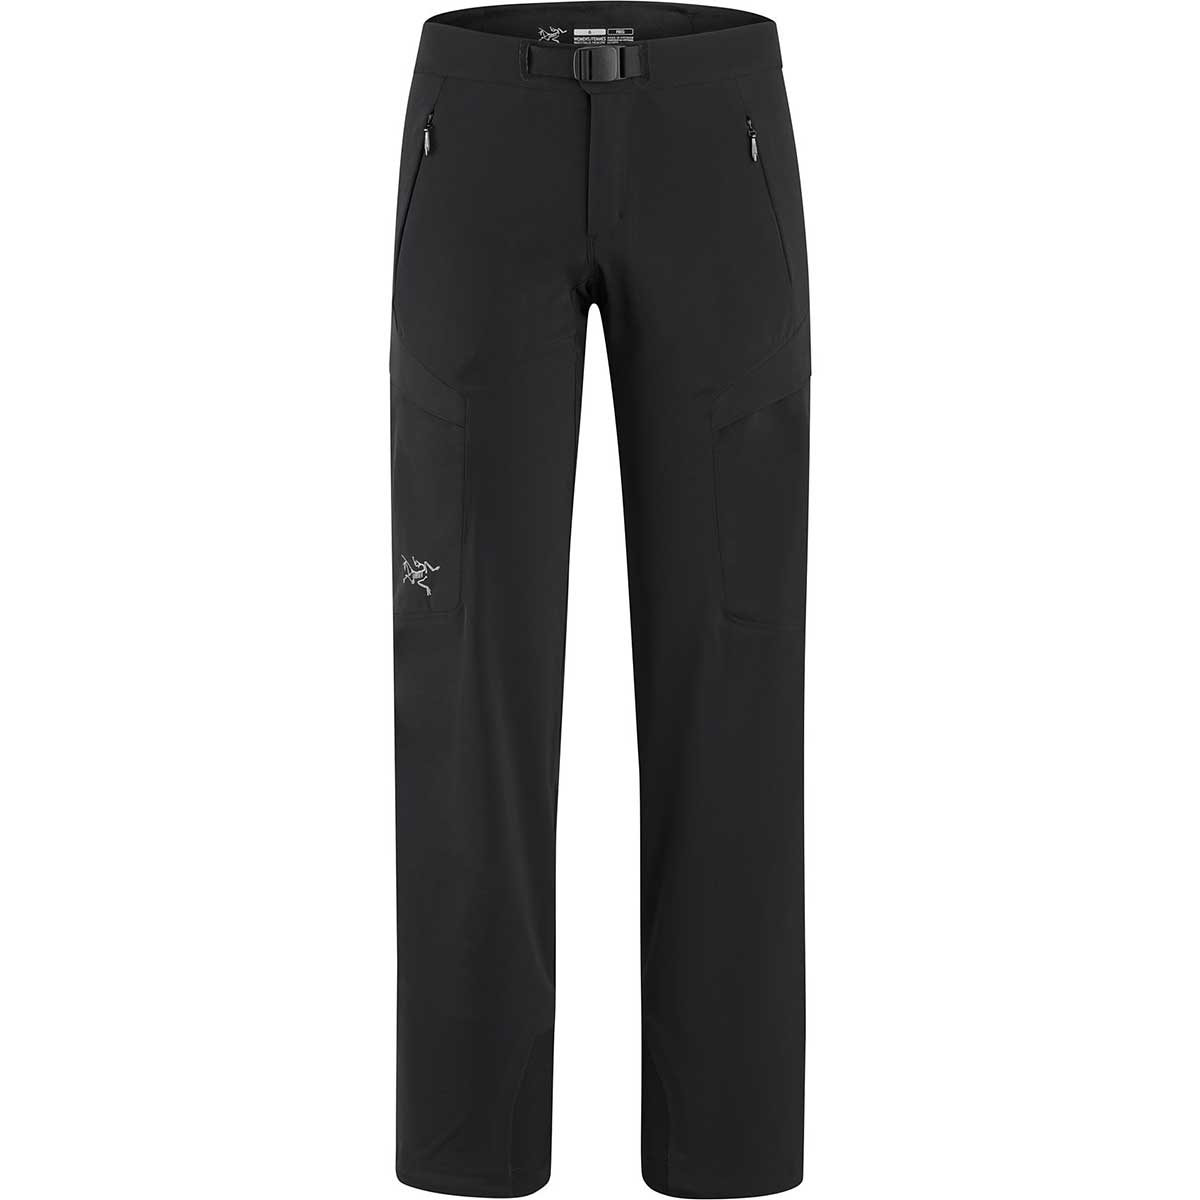 Arcteryx women's Gamma MX Pant in Black main view